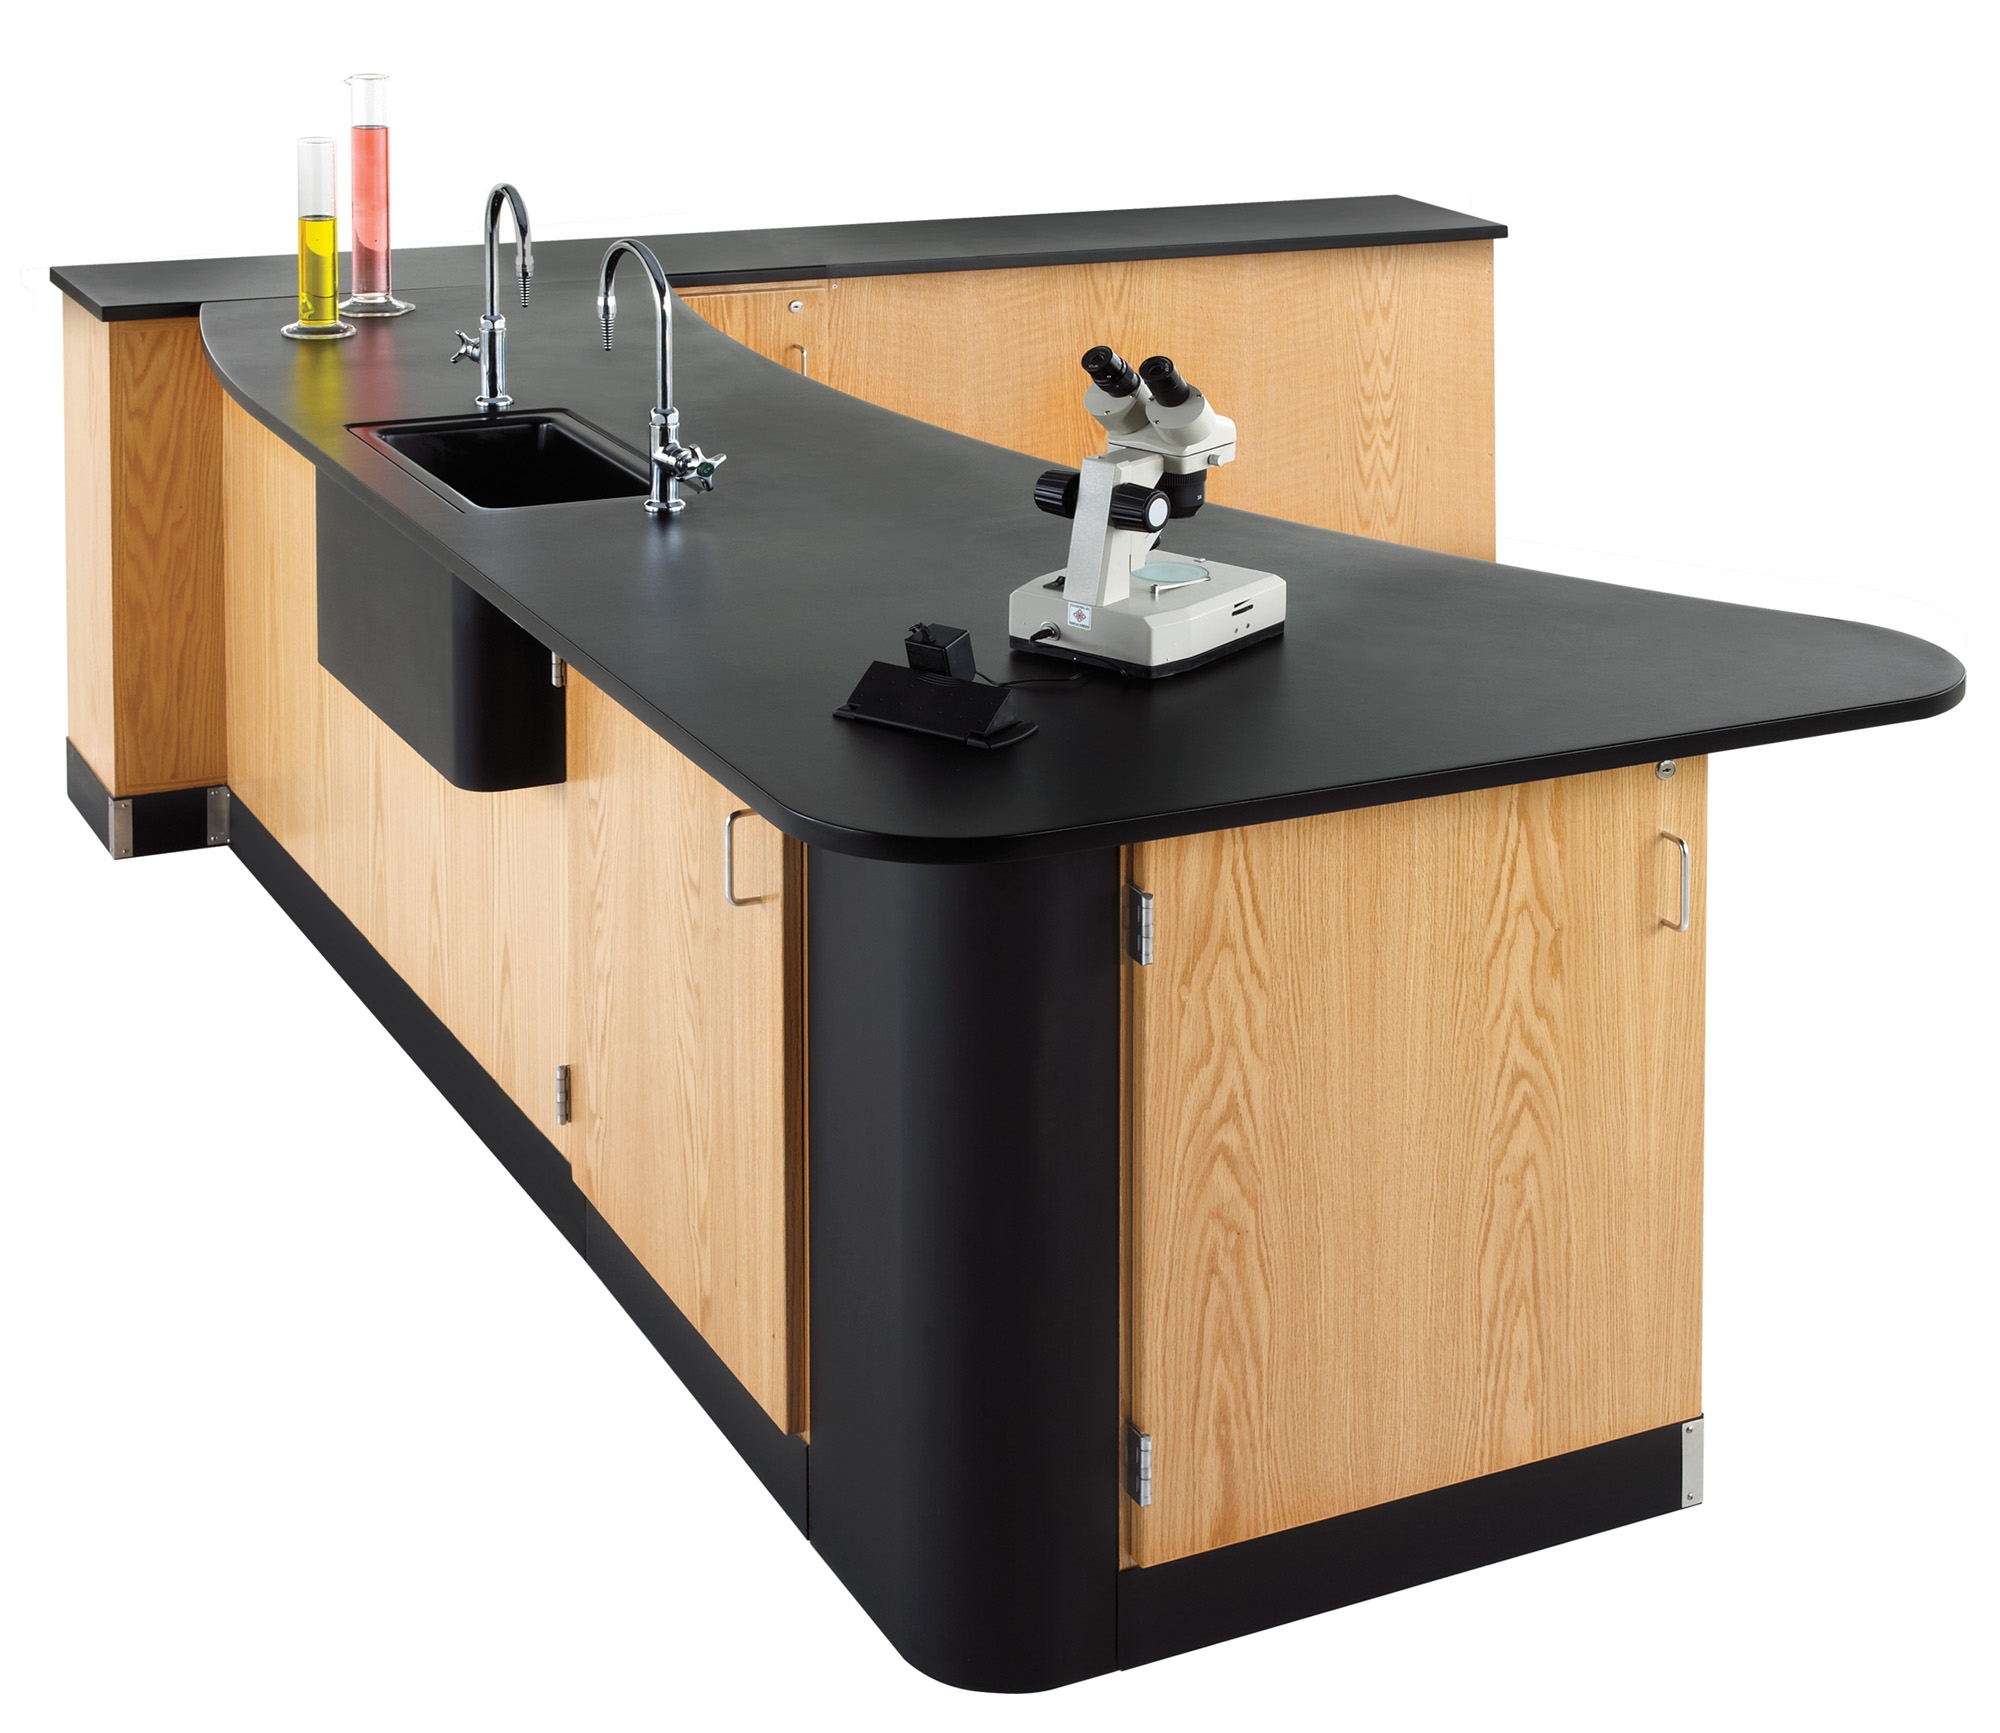 Diversified Woodcrafts Peninsula Workstation with Main Sink